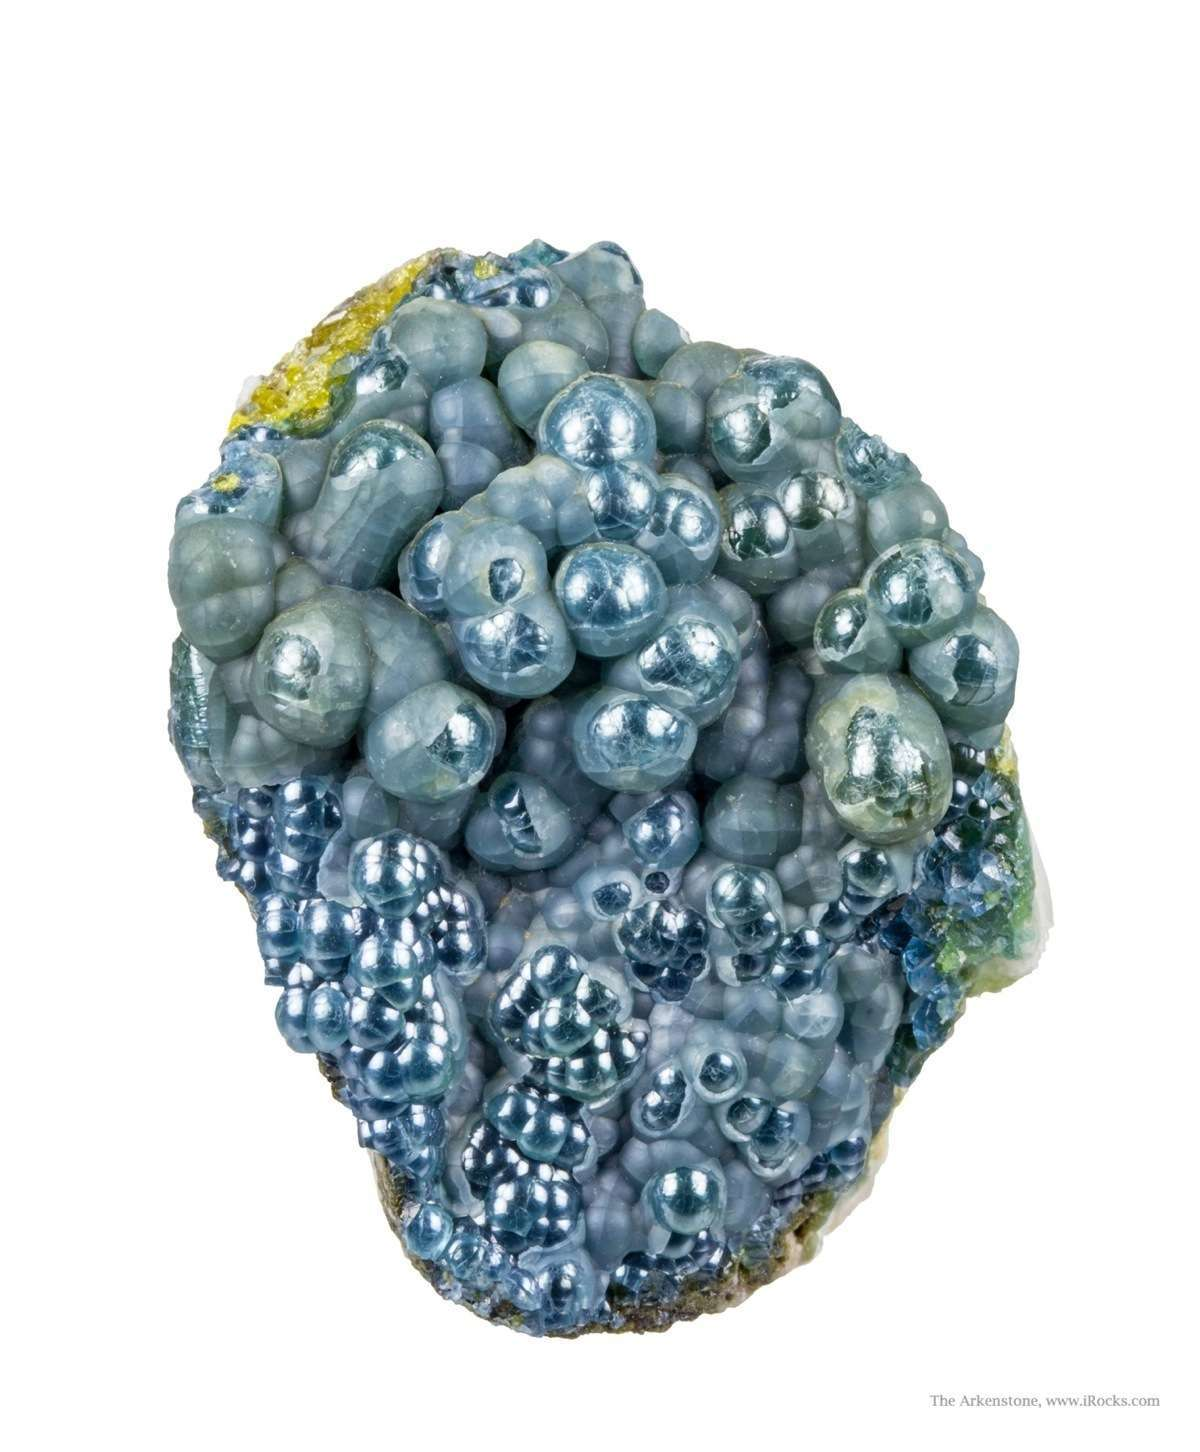 This plumbogummite specimen different coating mineral gives micaceous